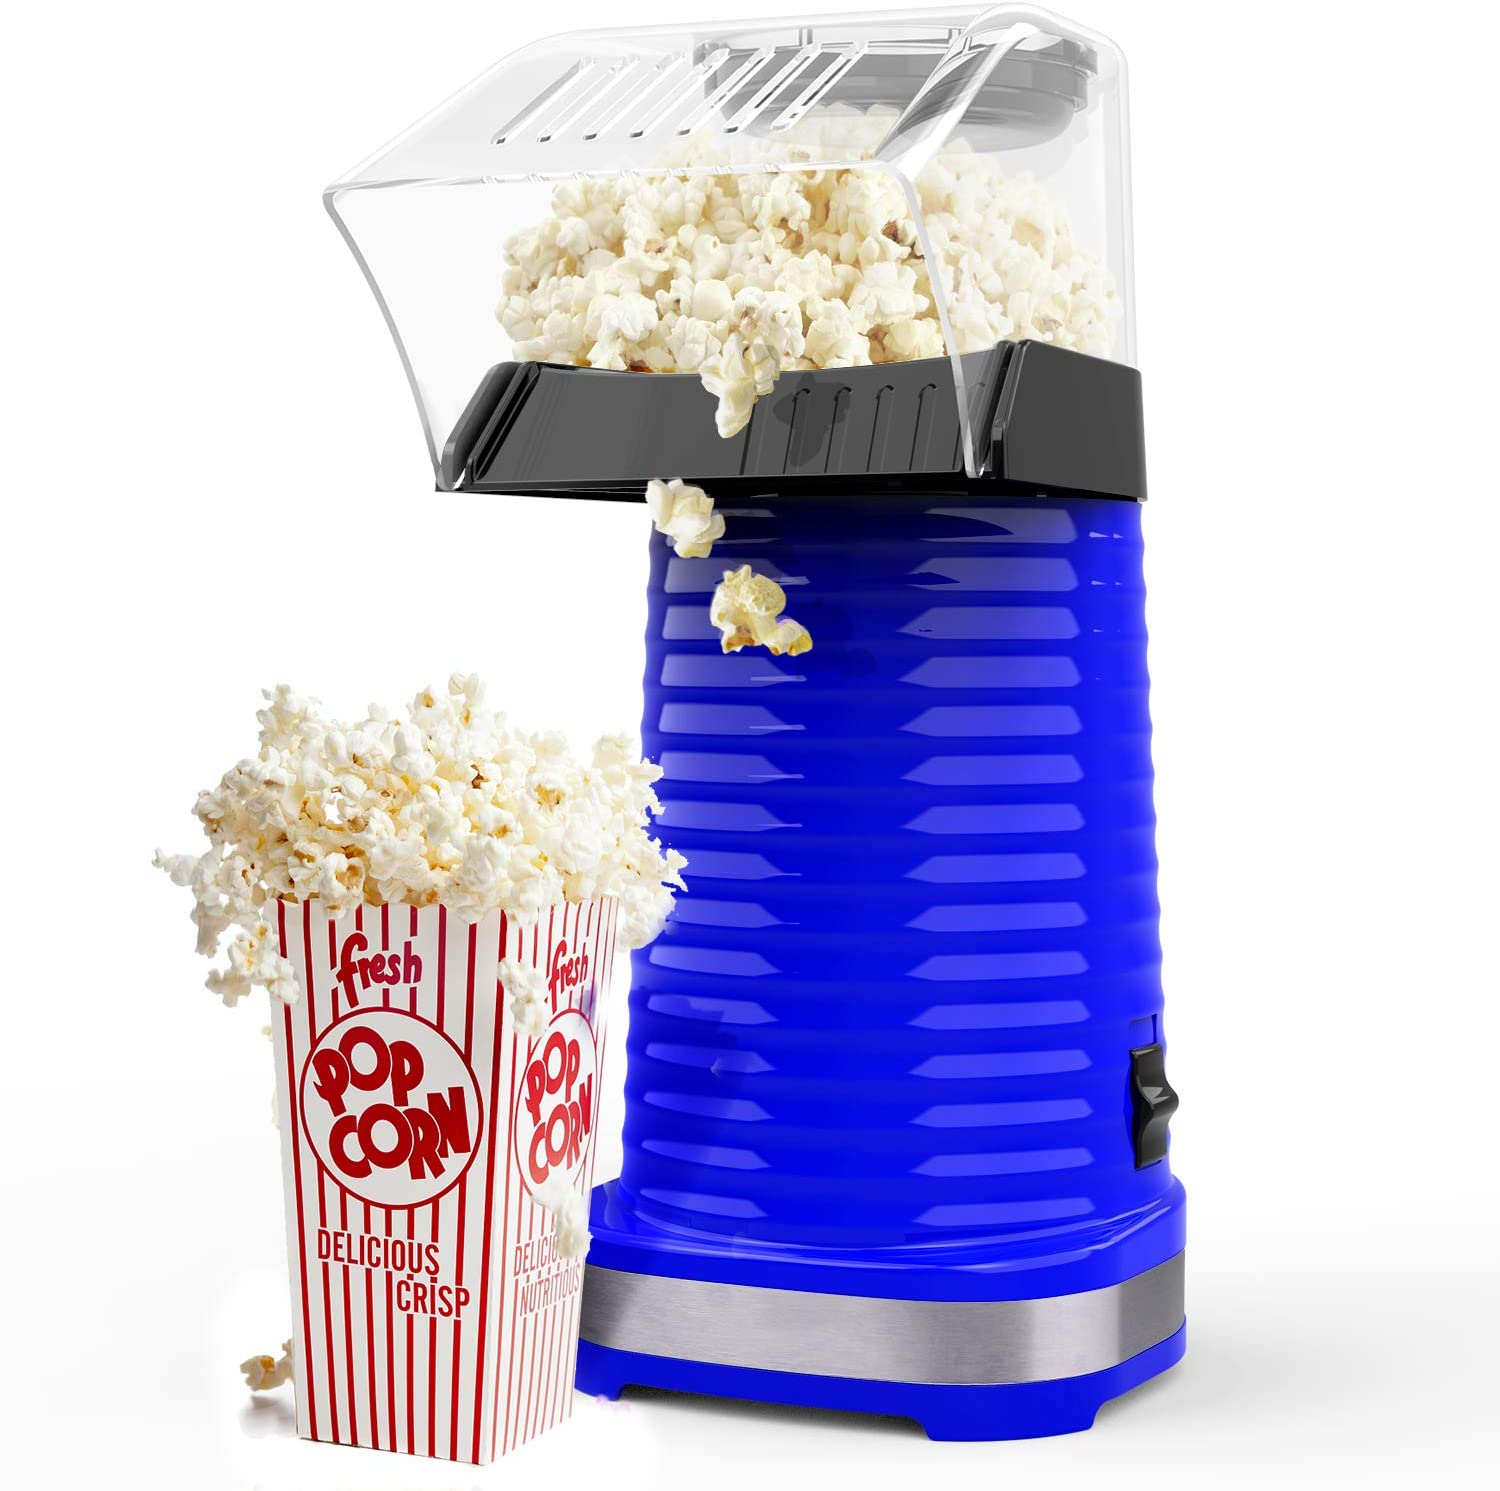 Hot Air Popcorn Poppers for Home, 1200W Popcorn Maker Machine for Healthy Snack, No Oil Needed, Great for Kids, Blue